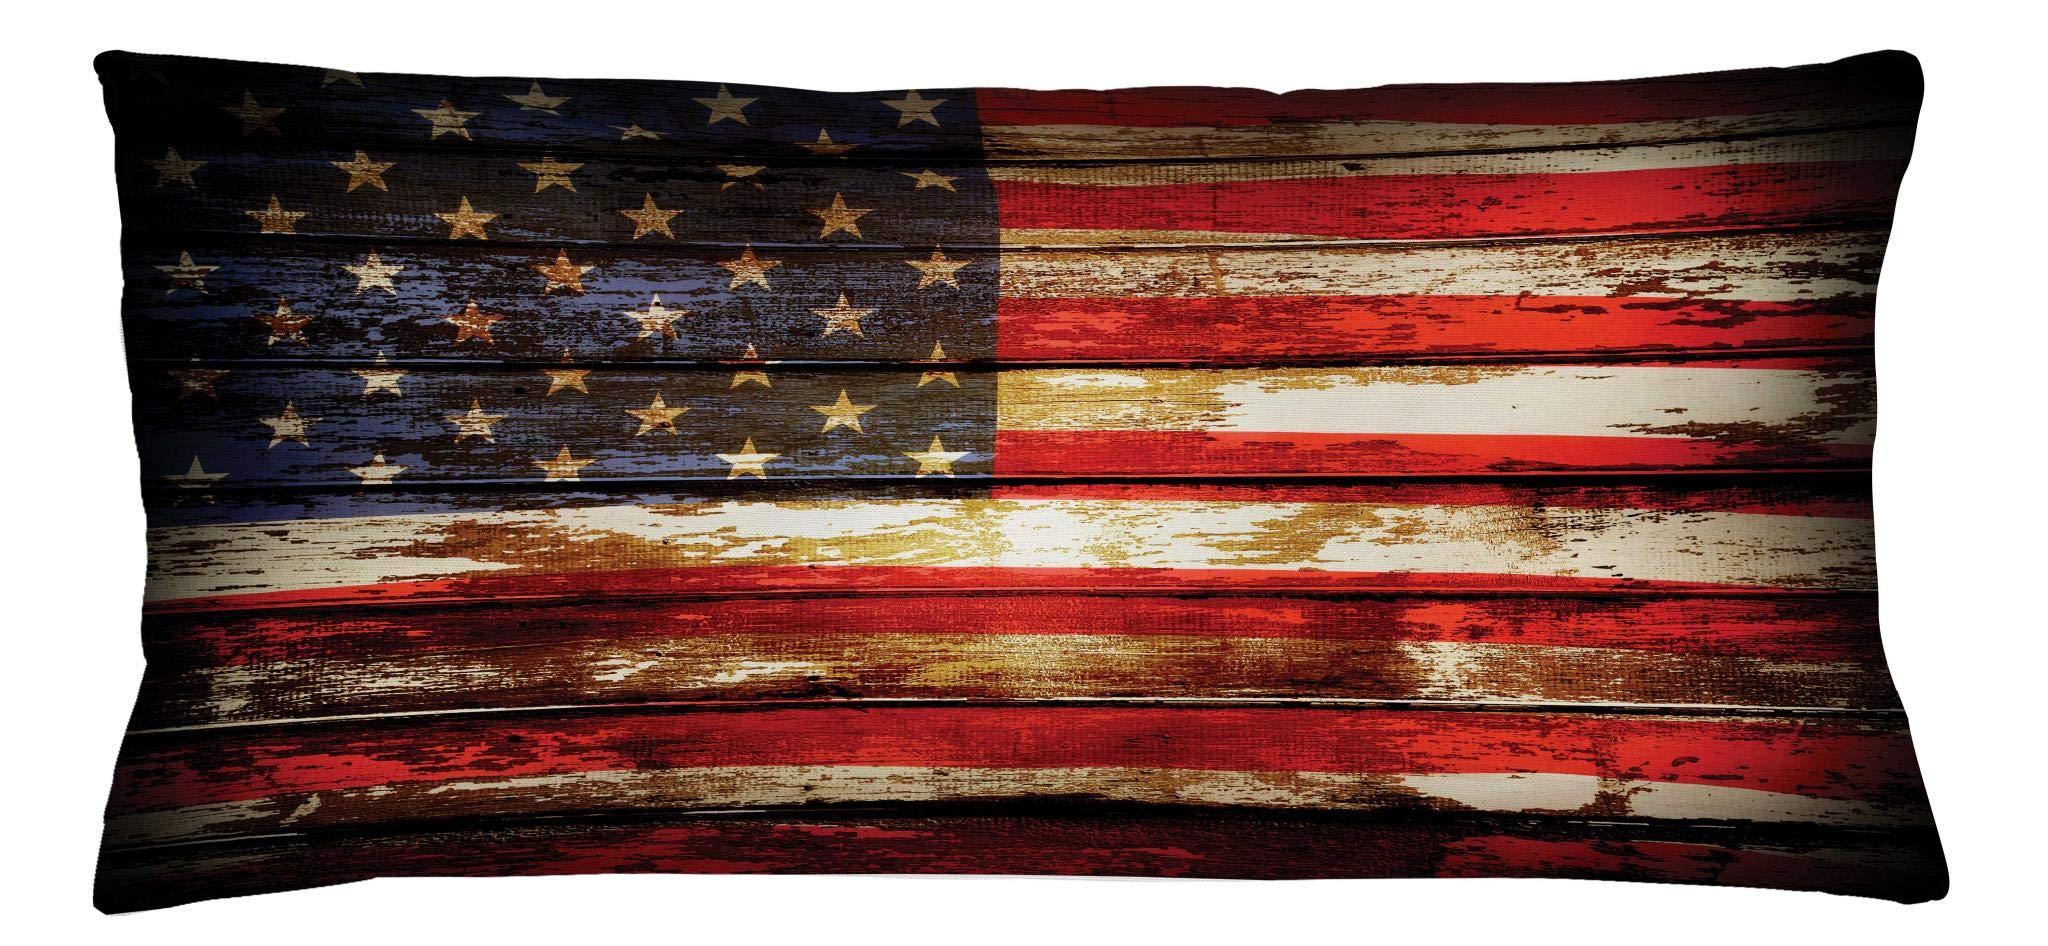 Ambesonne American Flag Throw Pillow Cushion Cover, Us Symbolism Over Old Rusty Tones Weathered Vintage Social Plank Artwork, Decorative Square Accent Pillow Case, 36 X 16 Inches, Multicolor